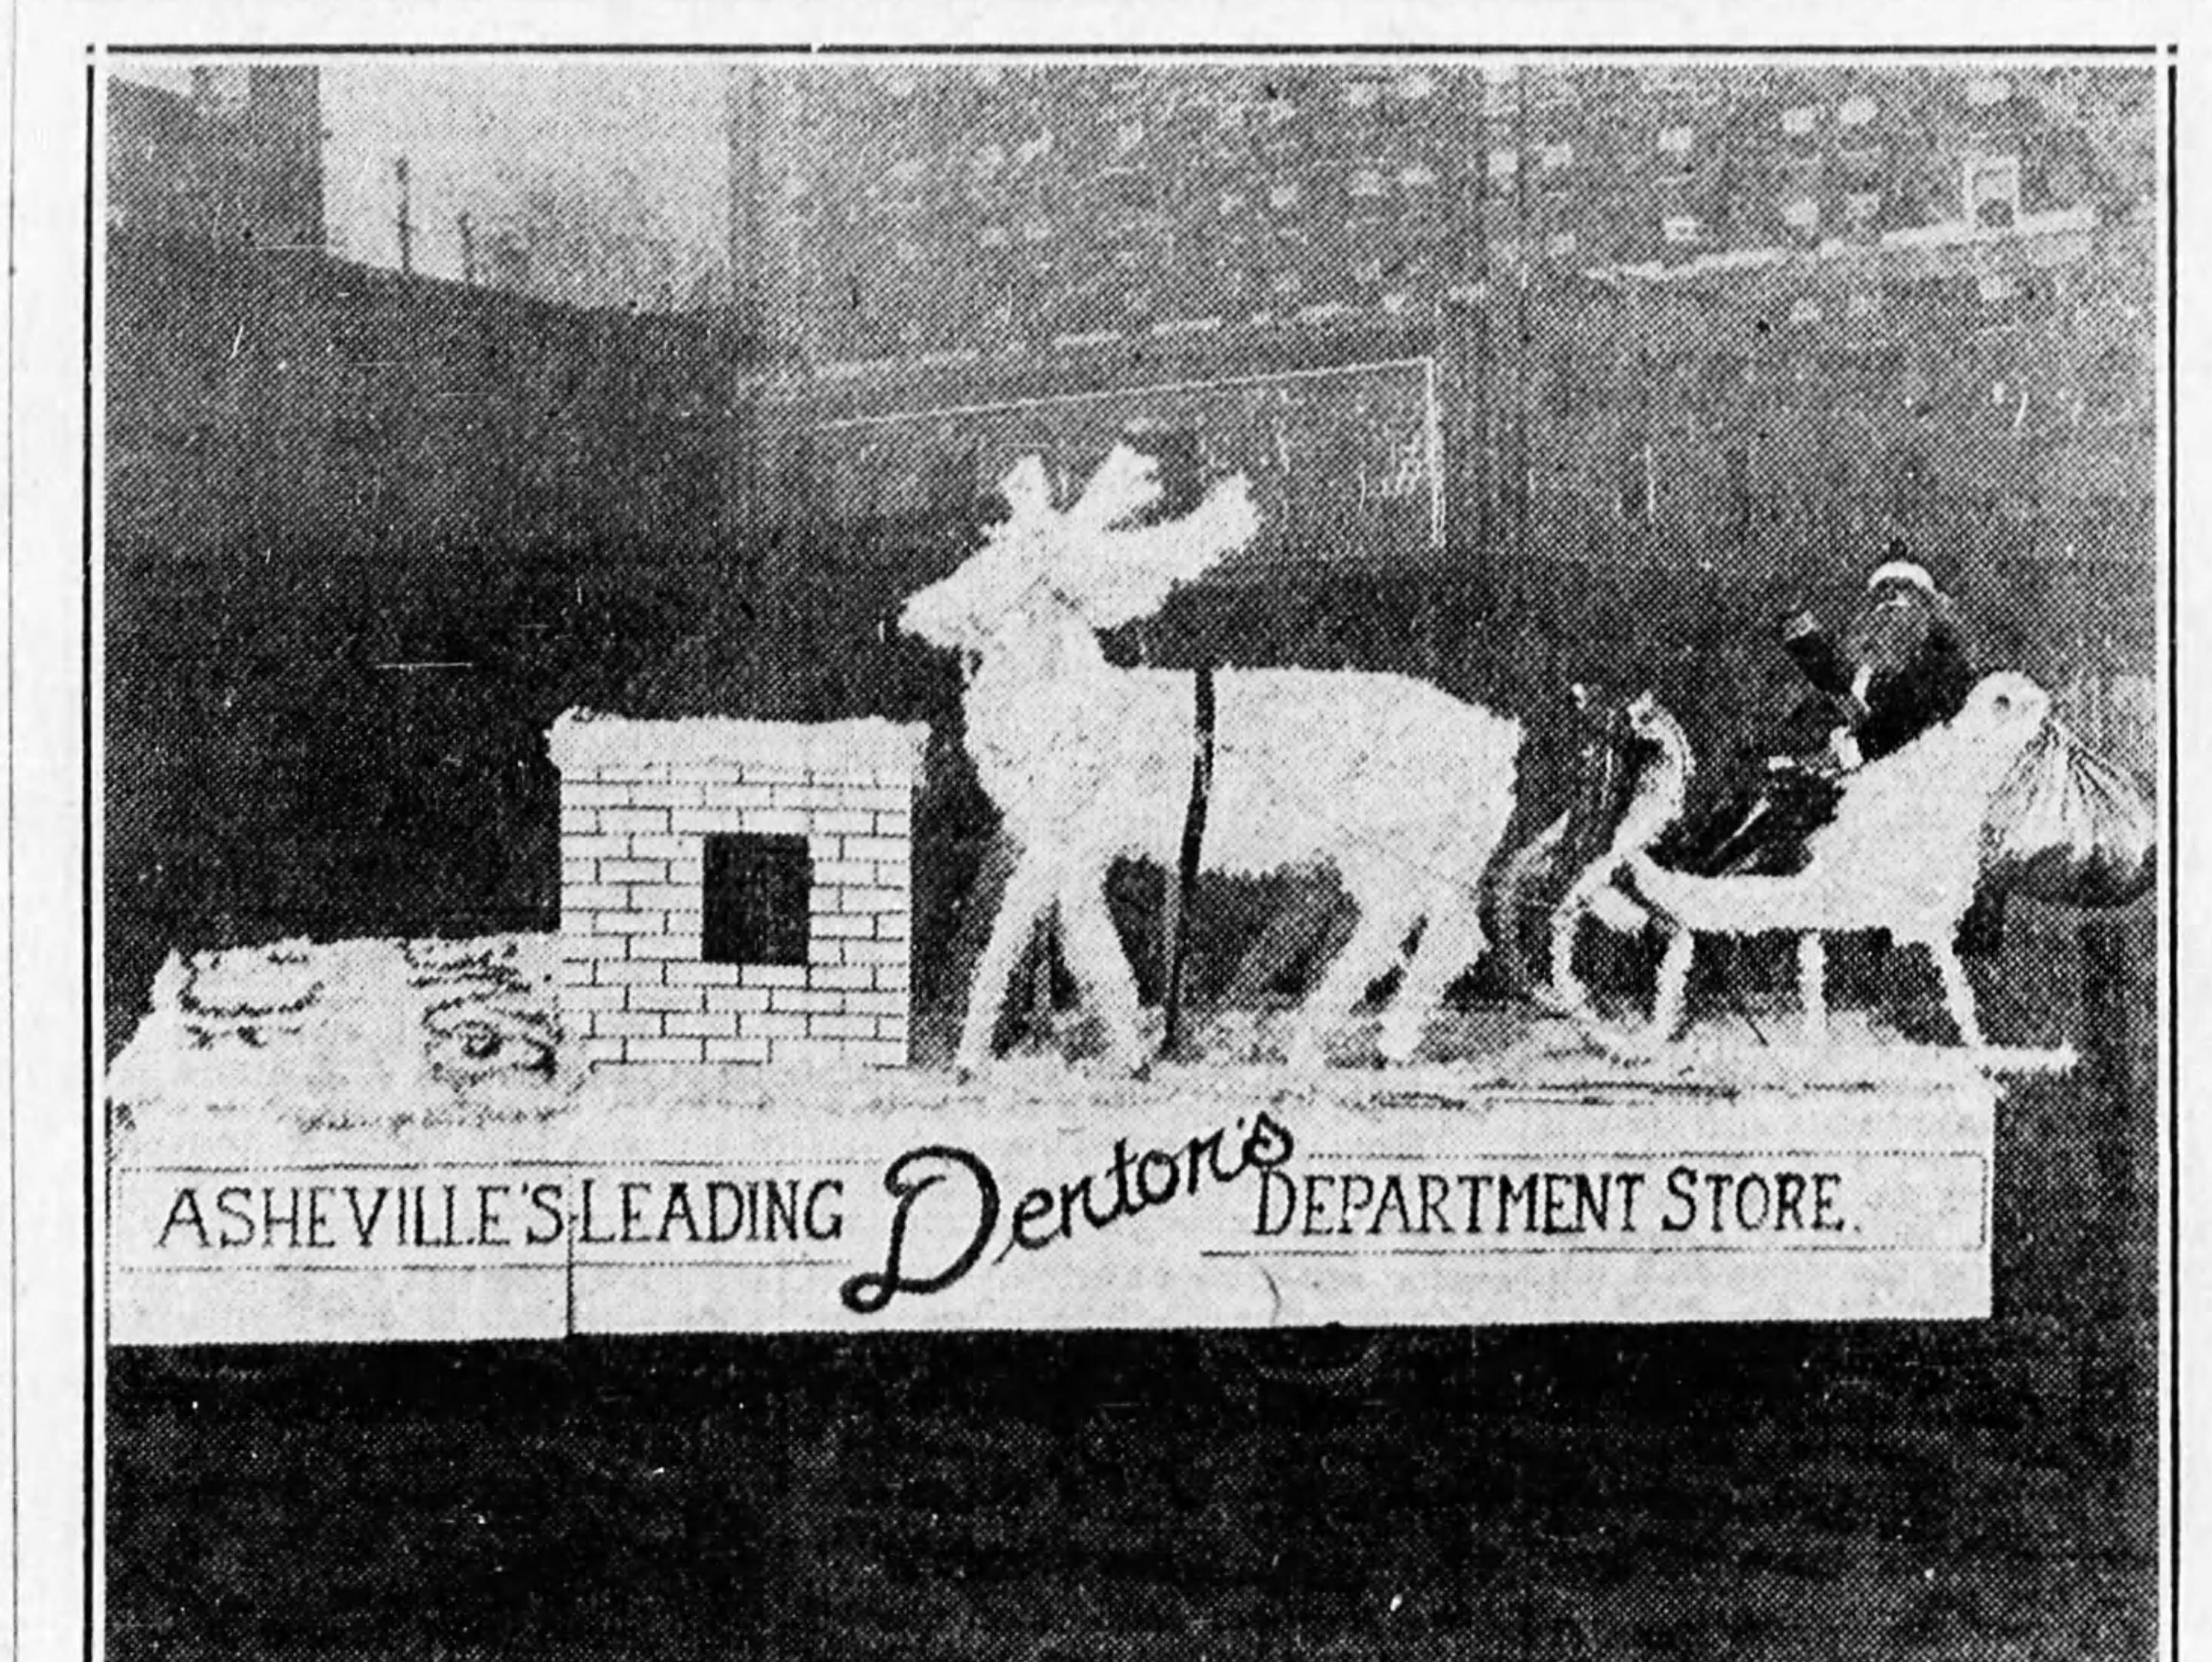 "Santa Claus visited Denton's Department Store on Haywood Street after a one-year absence from the store in December 1930. He is riding a sleigh with the slogan touting Denton's as ""Asheville's Leading Department Store."""